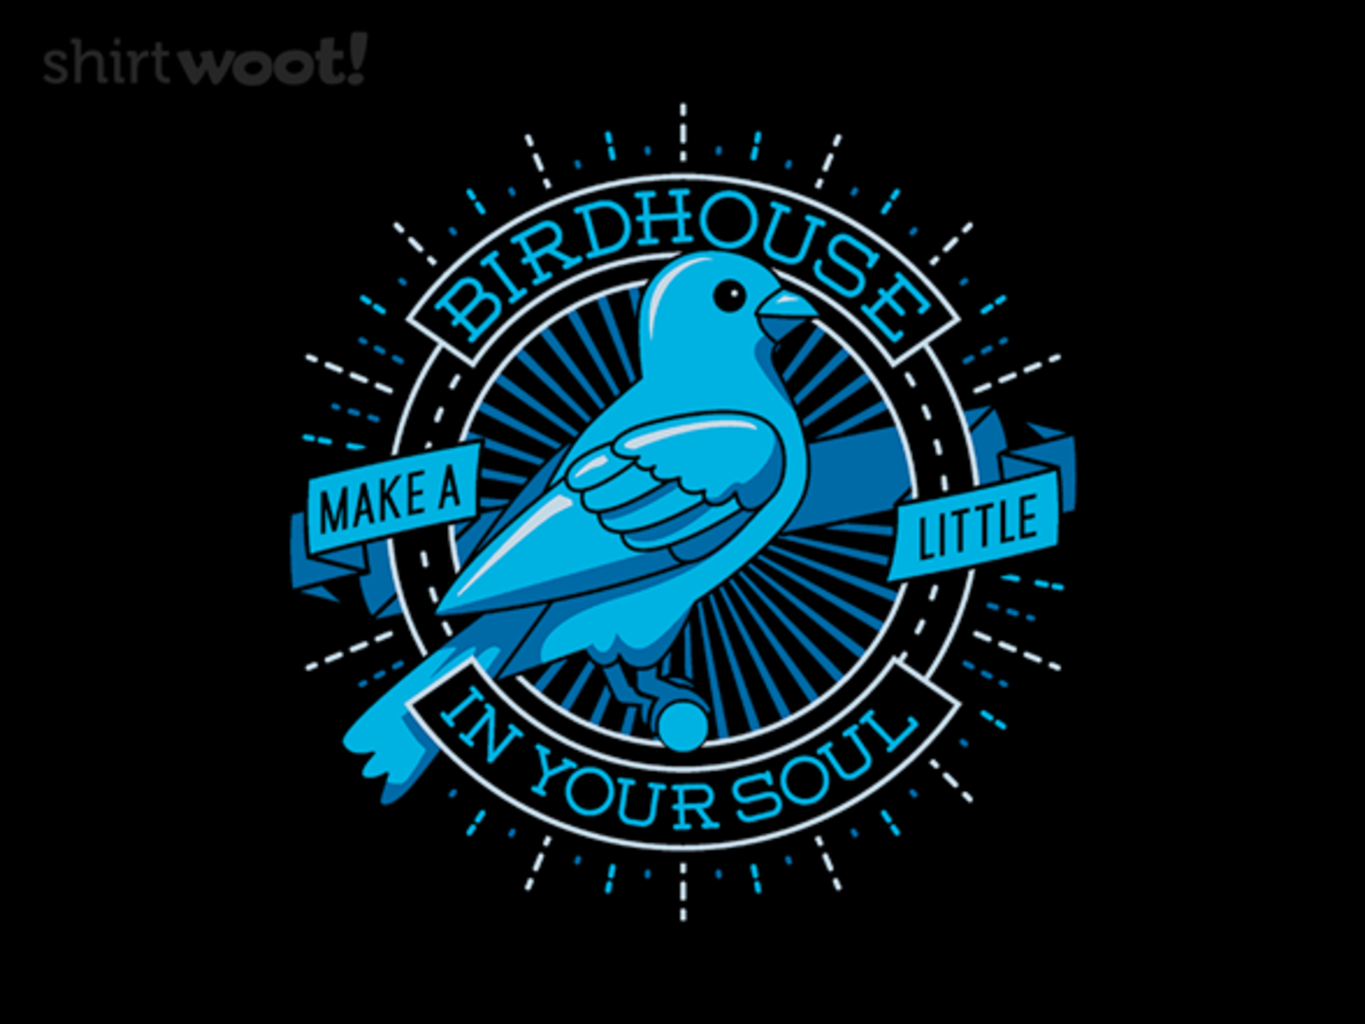 Woot!: Blue Canary Birdhouse